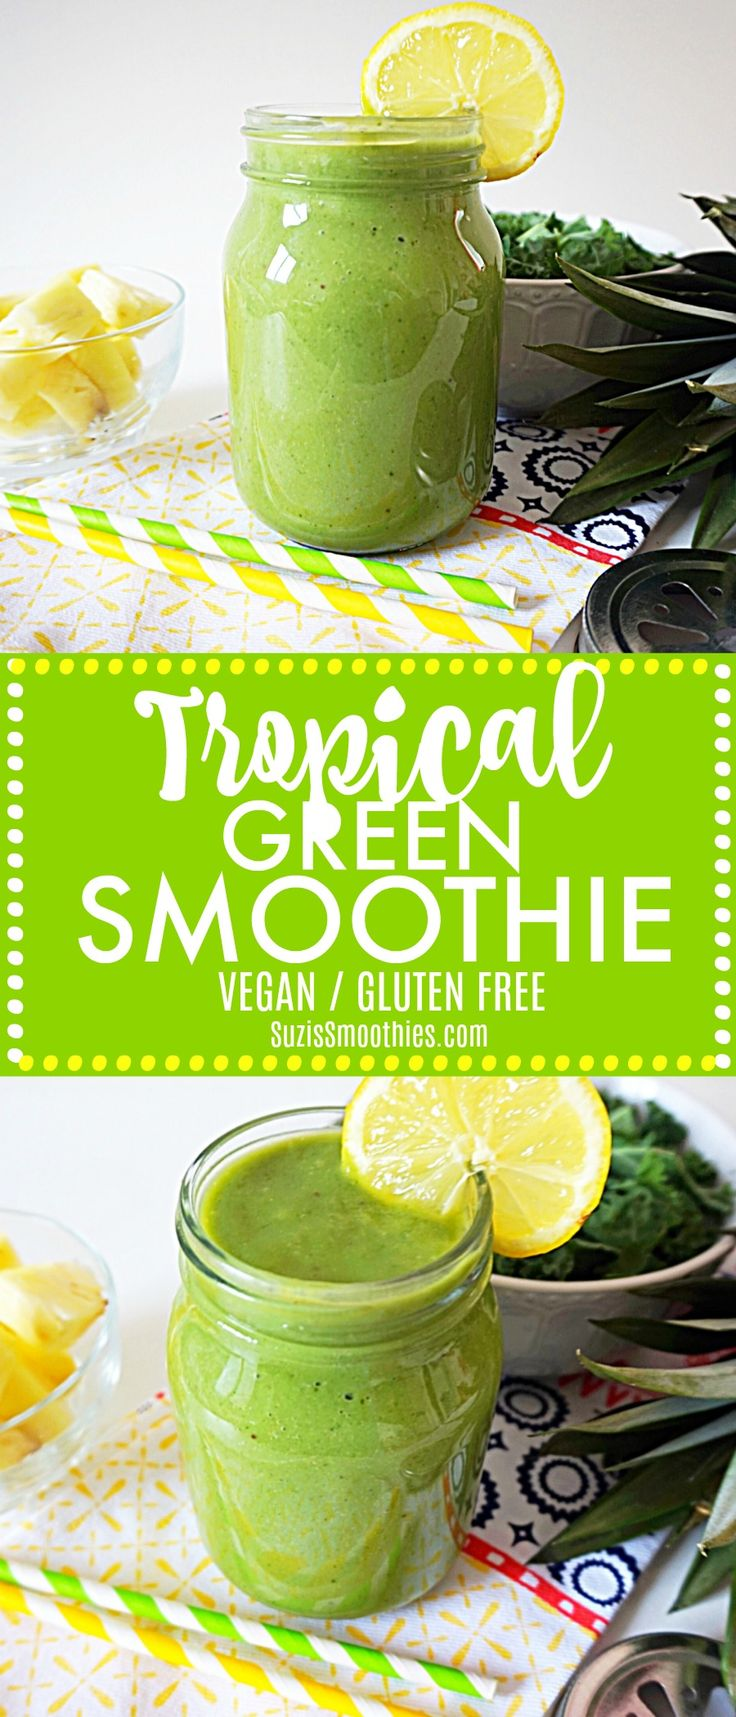 This smoothie recipe is so yummy and it's super healthy. It's great for aiding natural weight loss and makes you feel so energised, I love it!